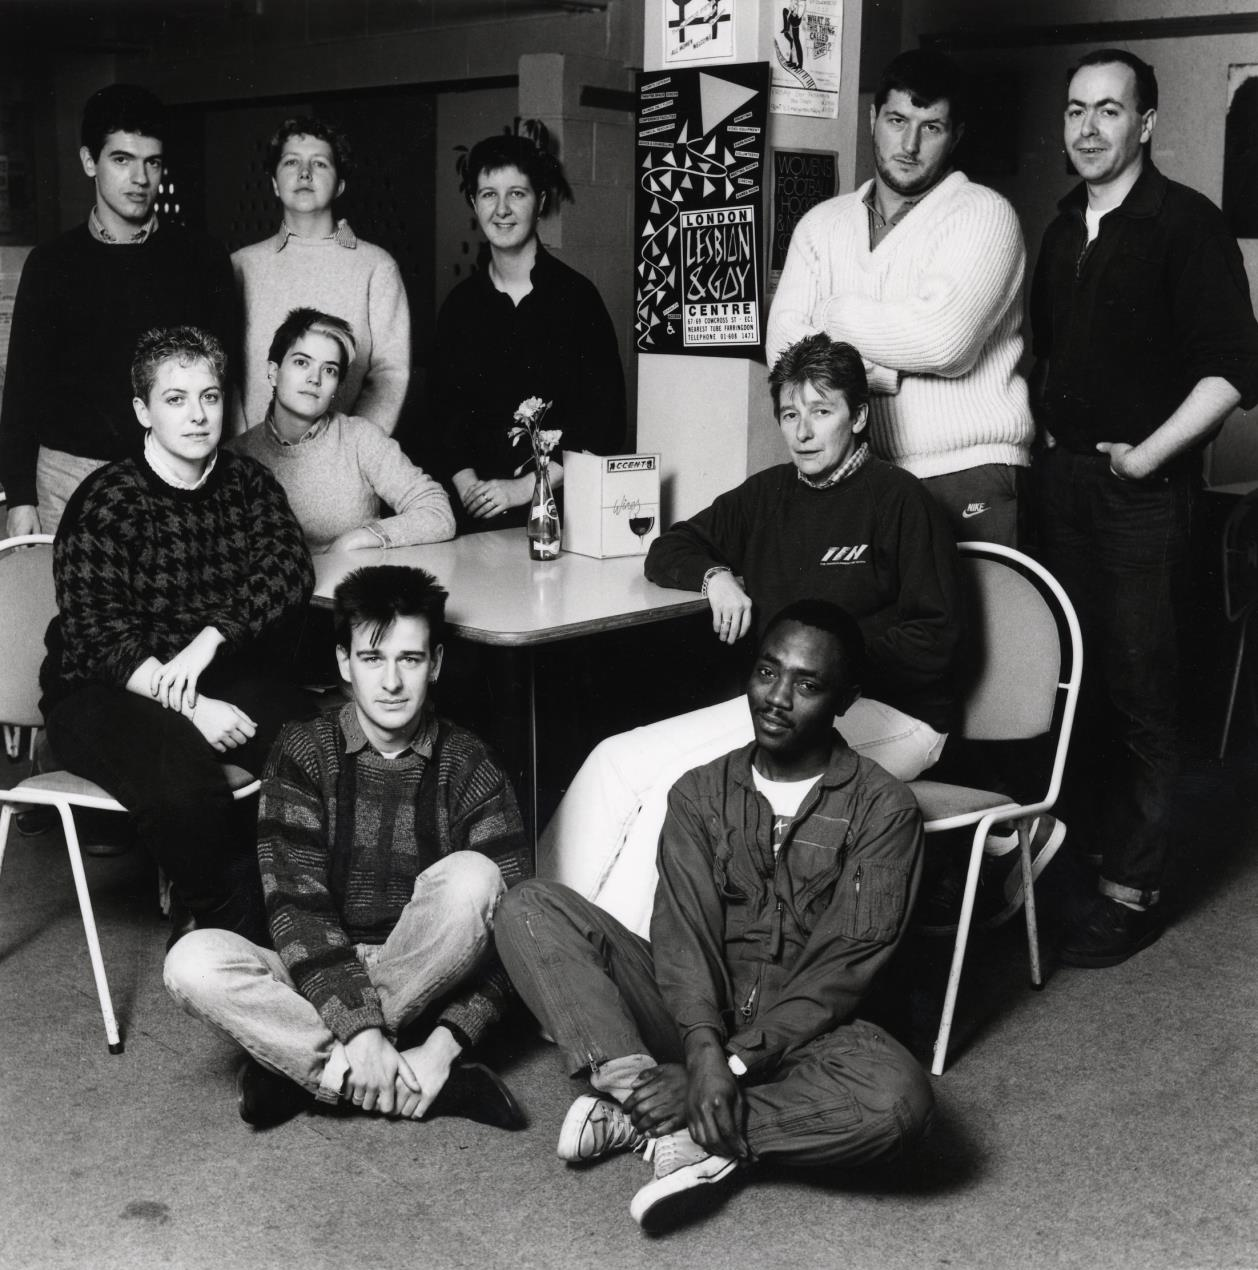 London_Lesbian_and_Gay_Centre_in_Cowcross_Street%2c_Clerkenwell%2c_in_the_1980s